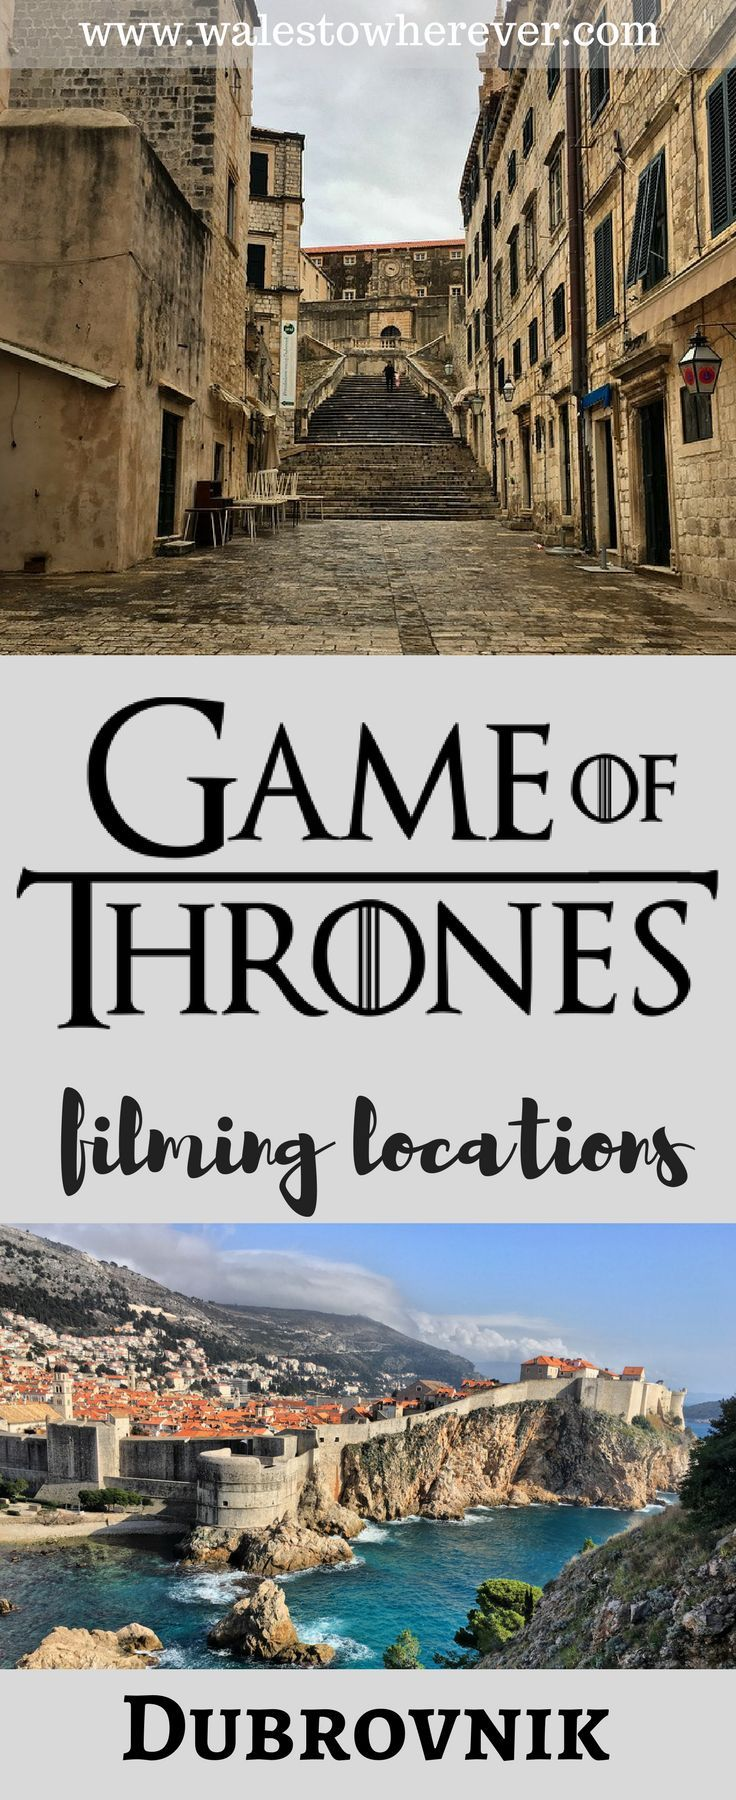 10 Game of Thrones Filming Locations in Dubrovnik, Croatia. Travel in Eastern Europe.